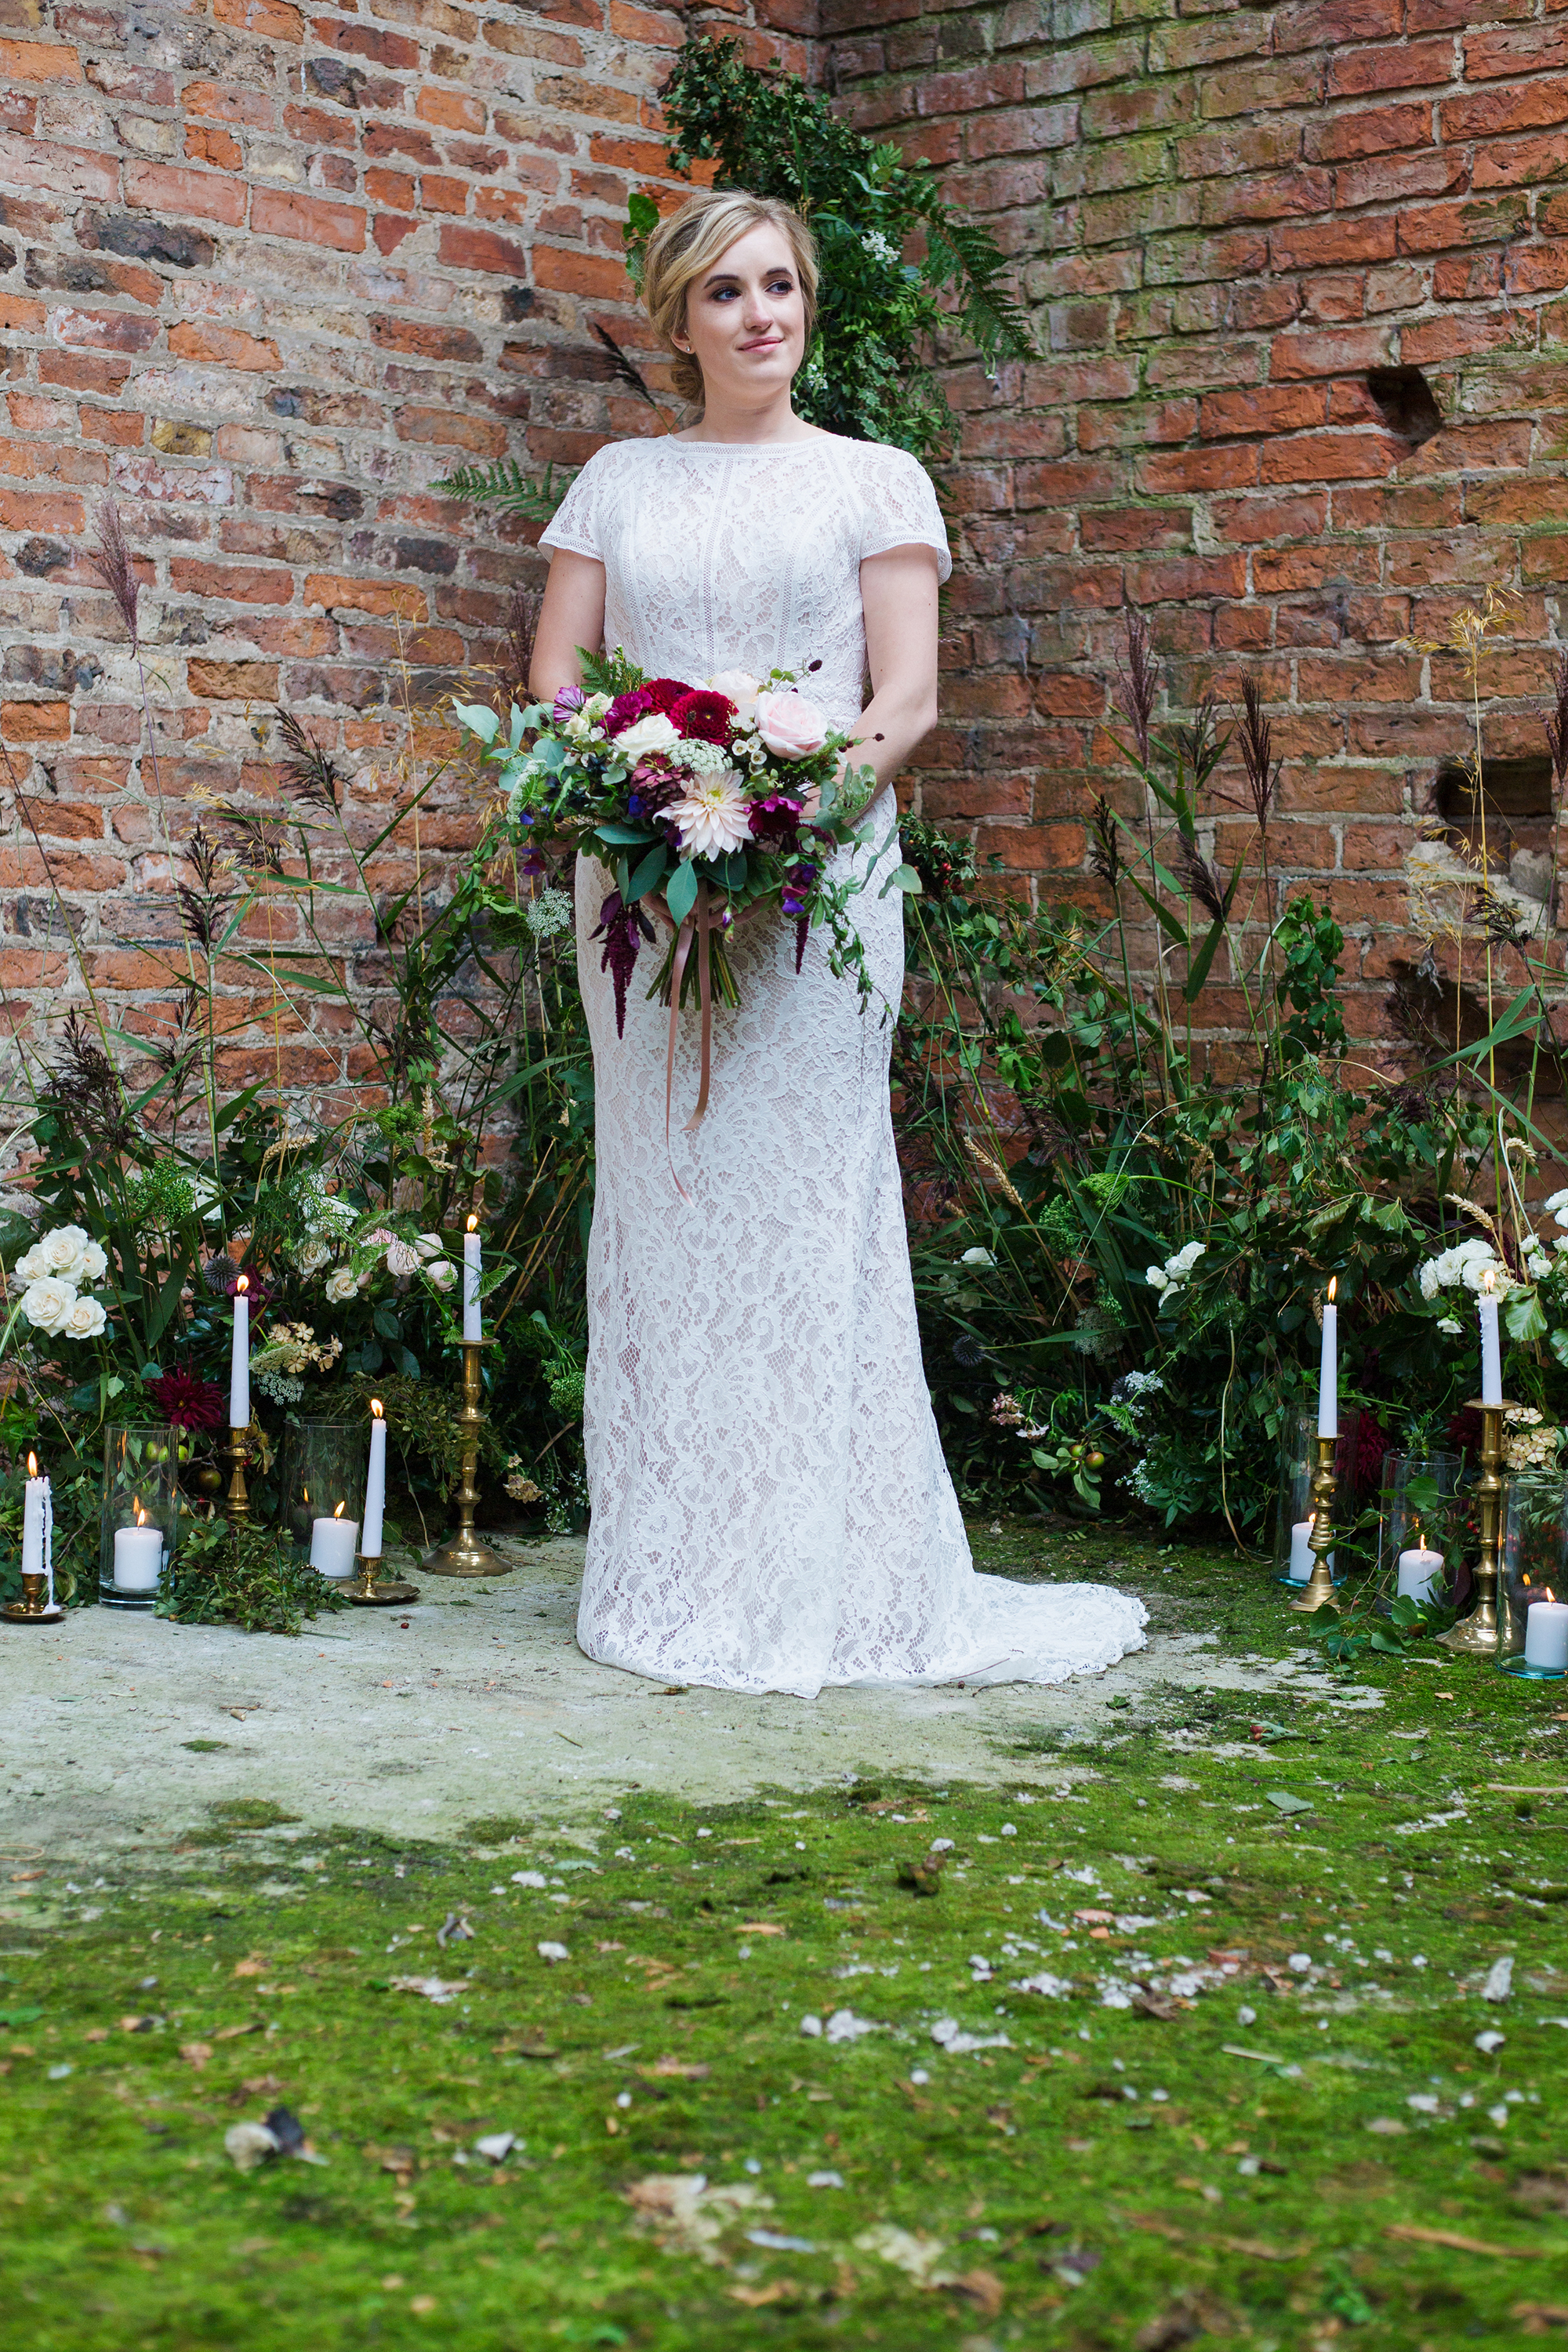 LilyNorth, Author at Lily North Photography | Award winning wedding ...